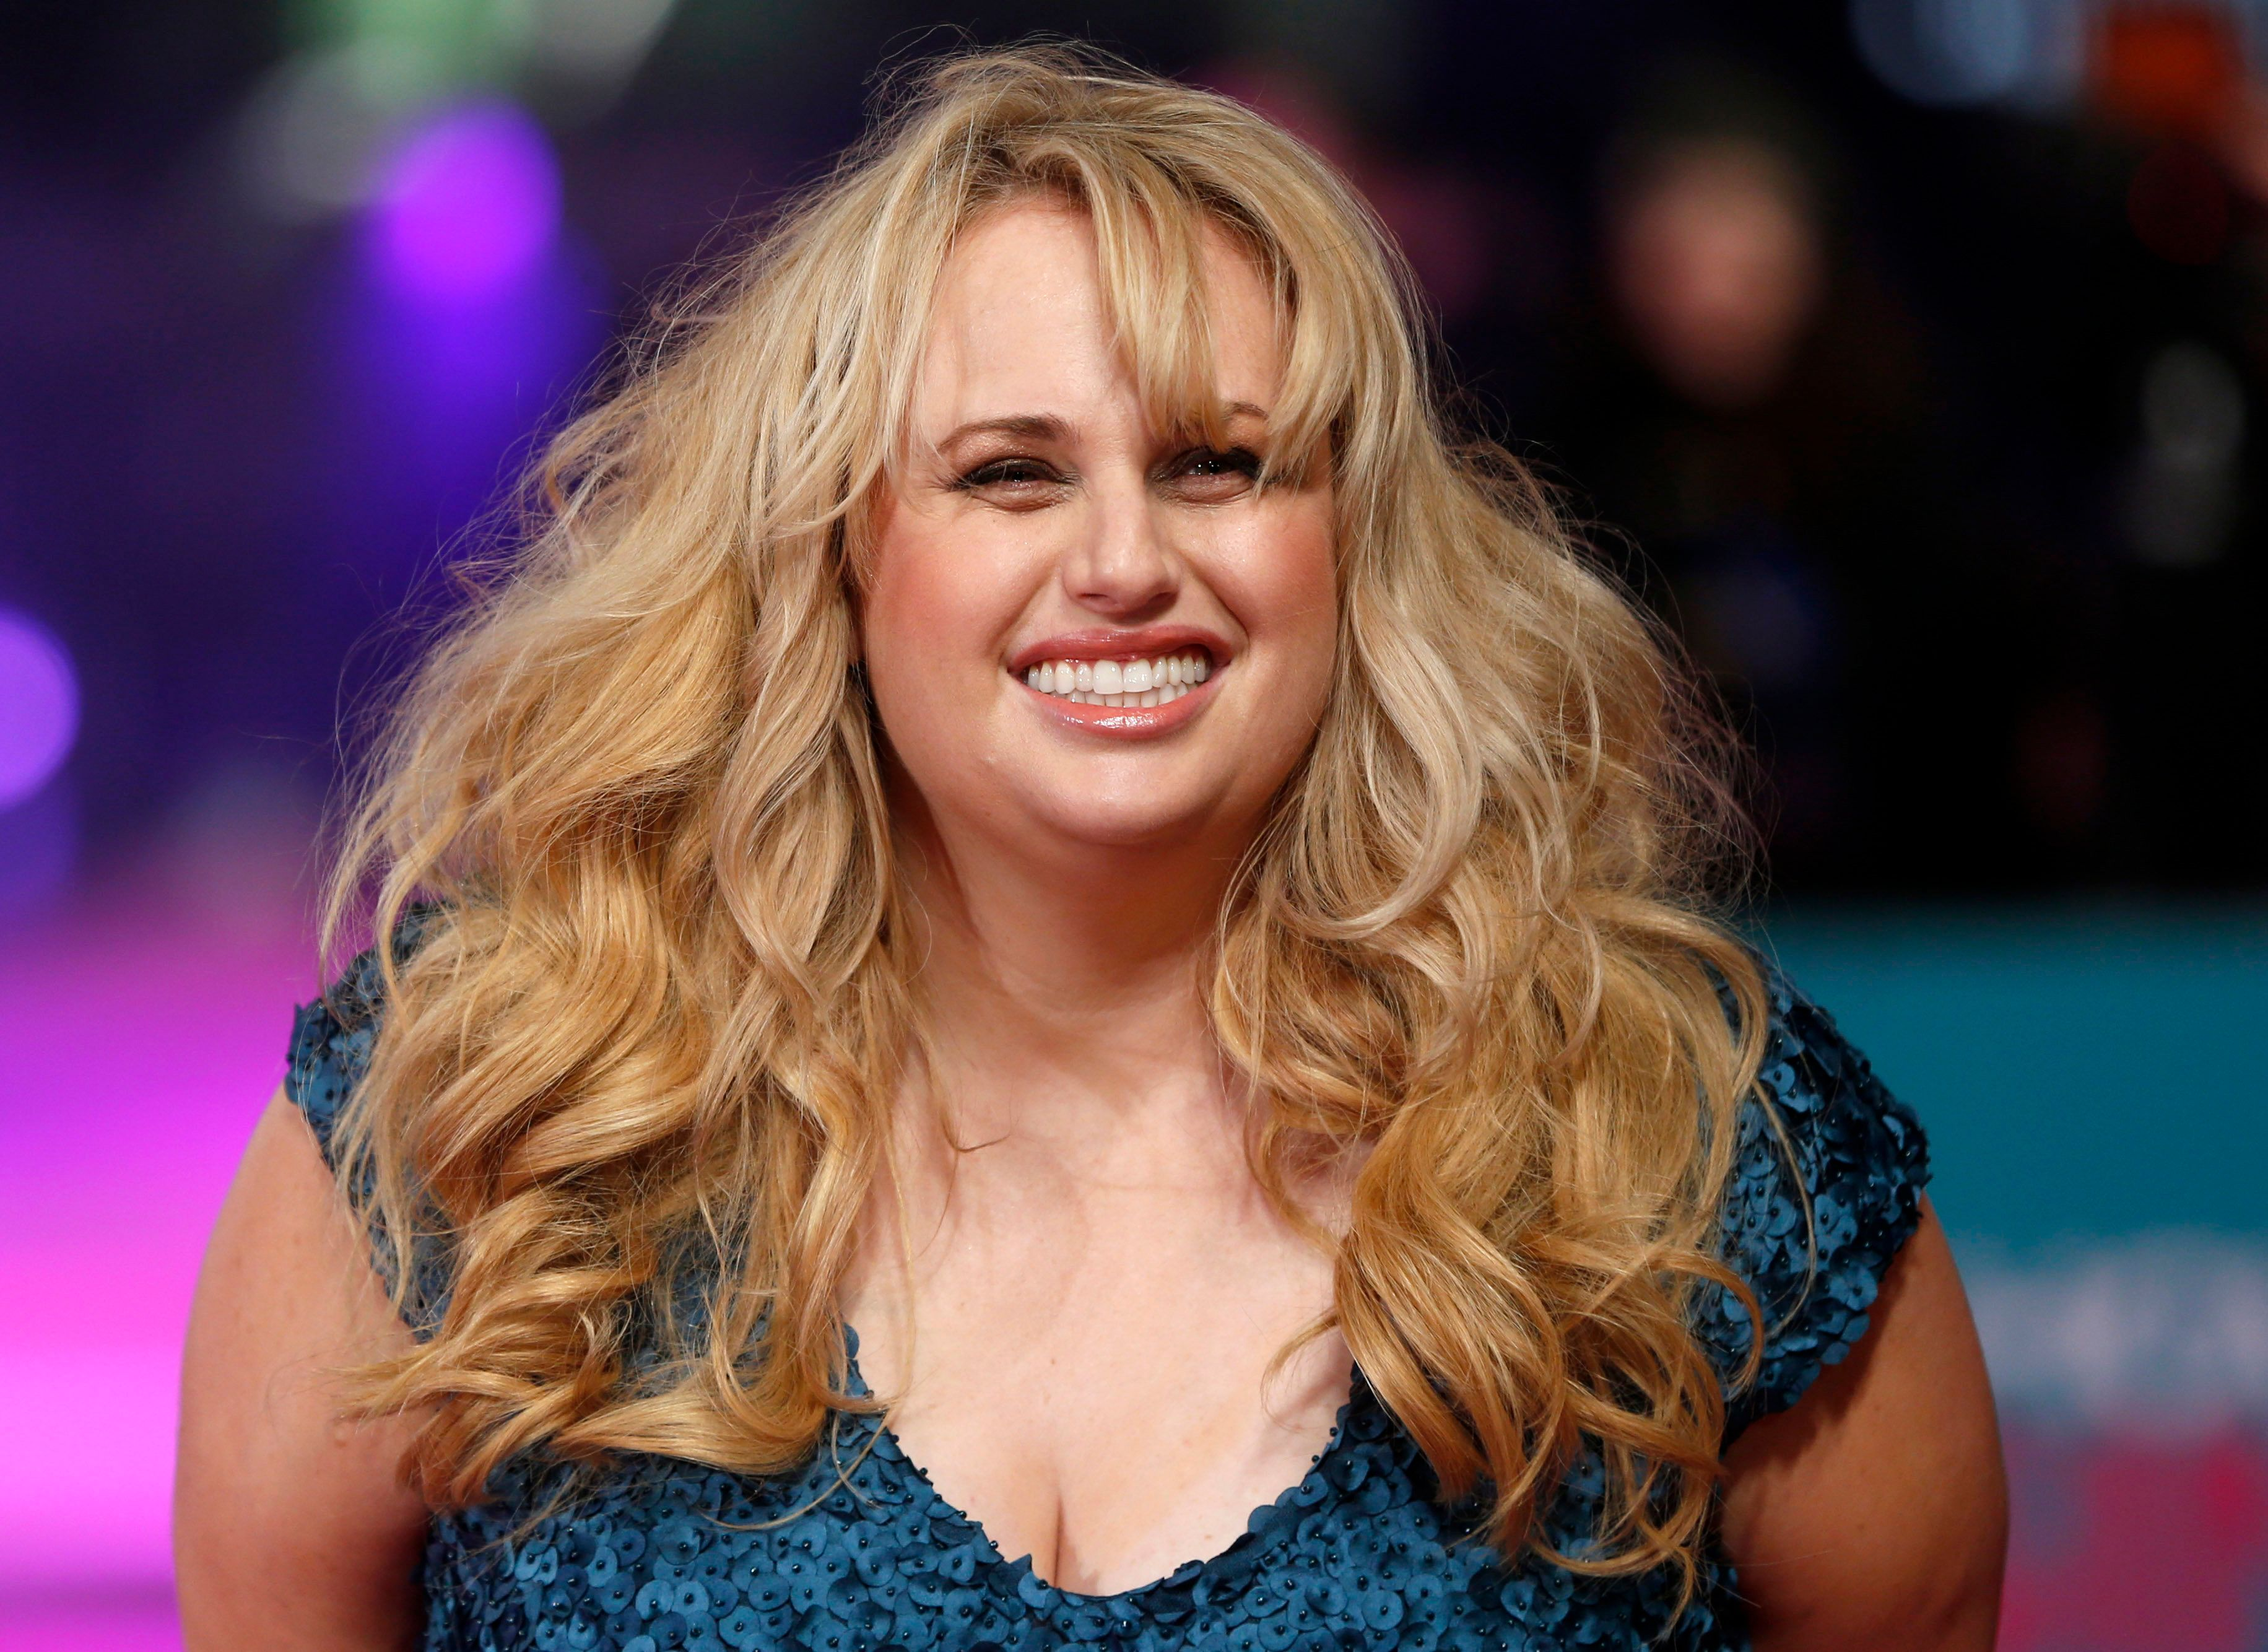 Rebel Wilson claimed the series of articleshad damaged her career.